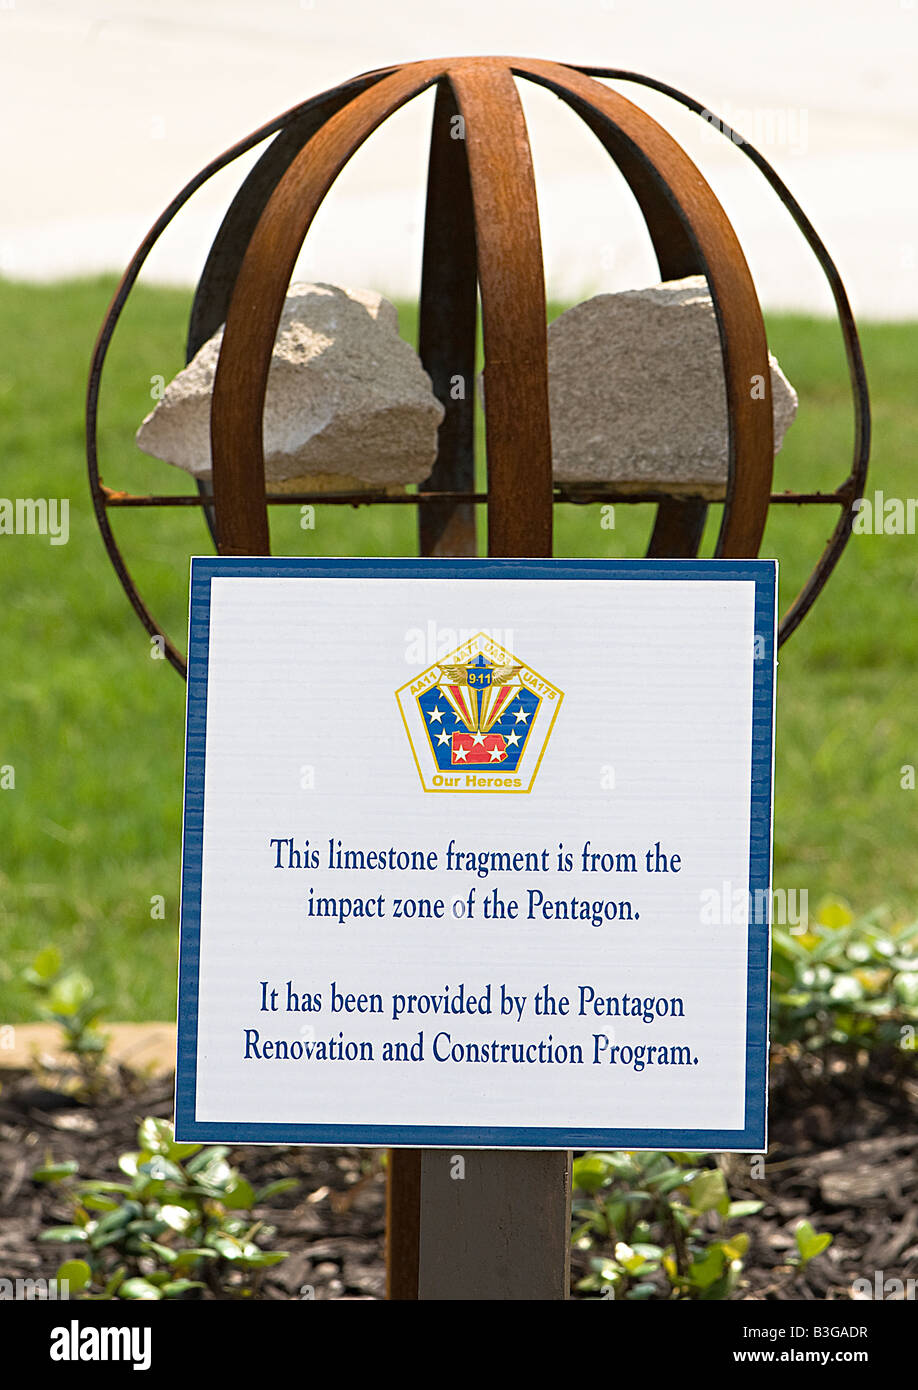 Limestone fragment from the Pentagon in Washington DC at the 9-11 Aircrew Memorial in Grapevine, TX - Stock Image